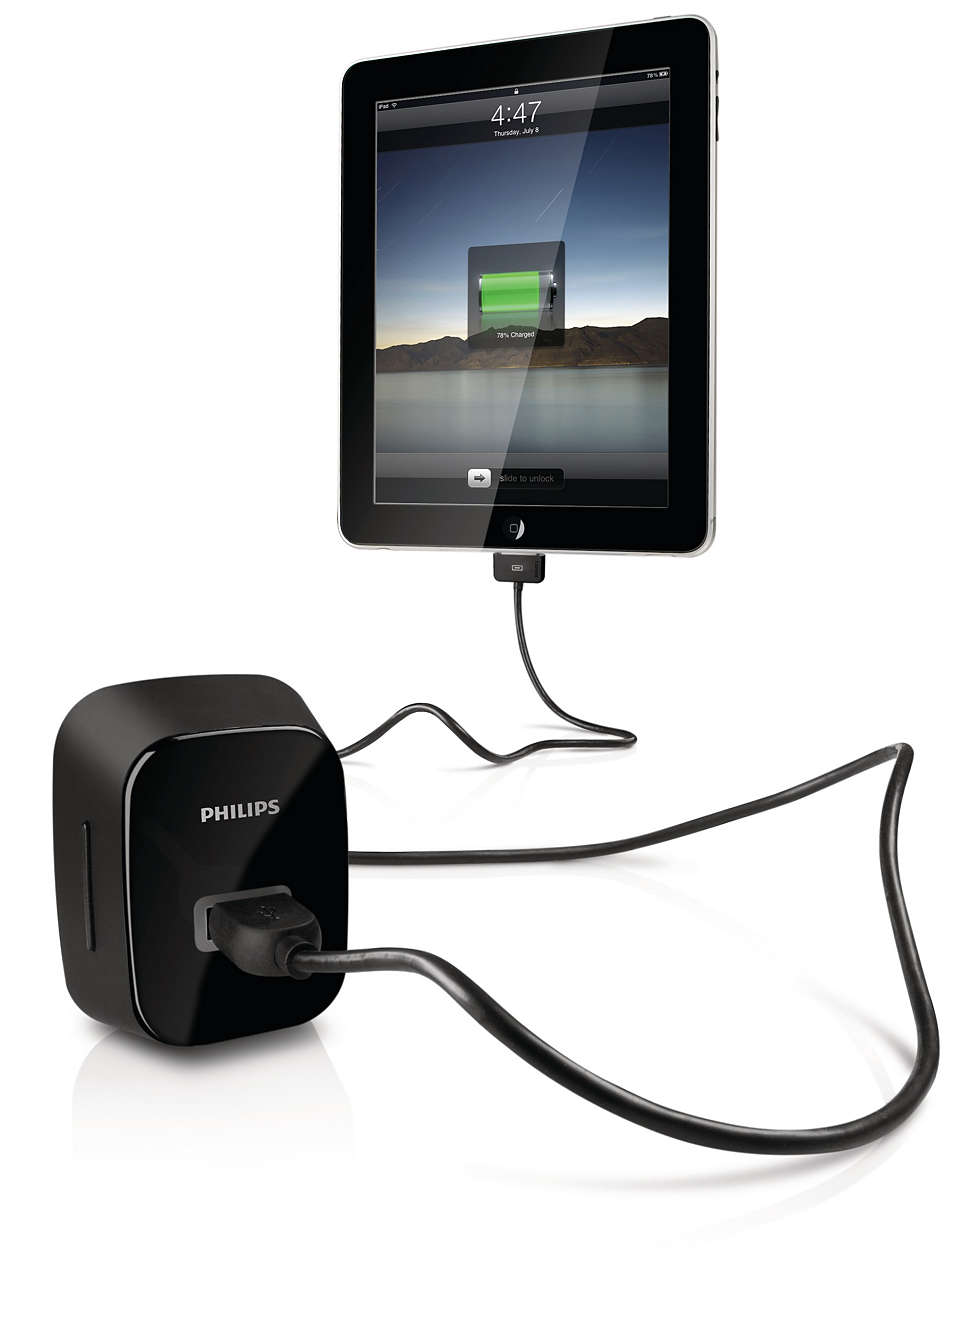 Charge your iPad, iPhone or iPod